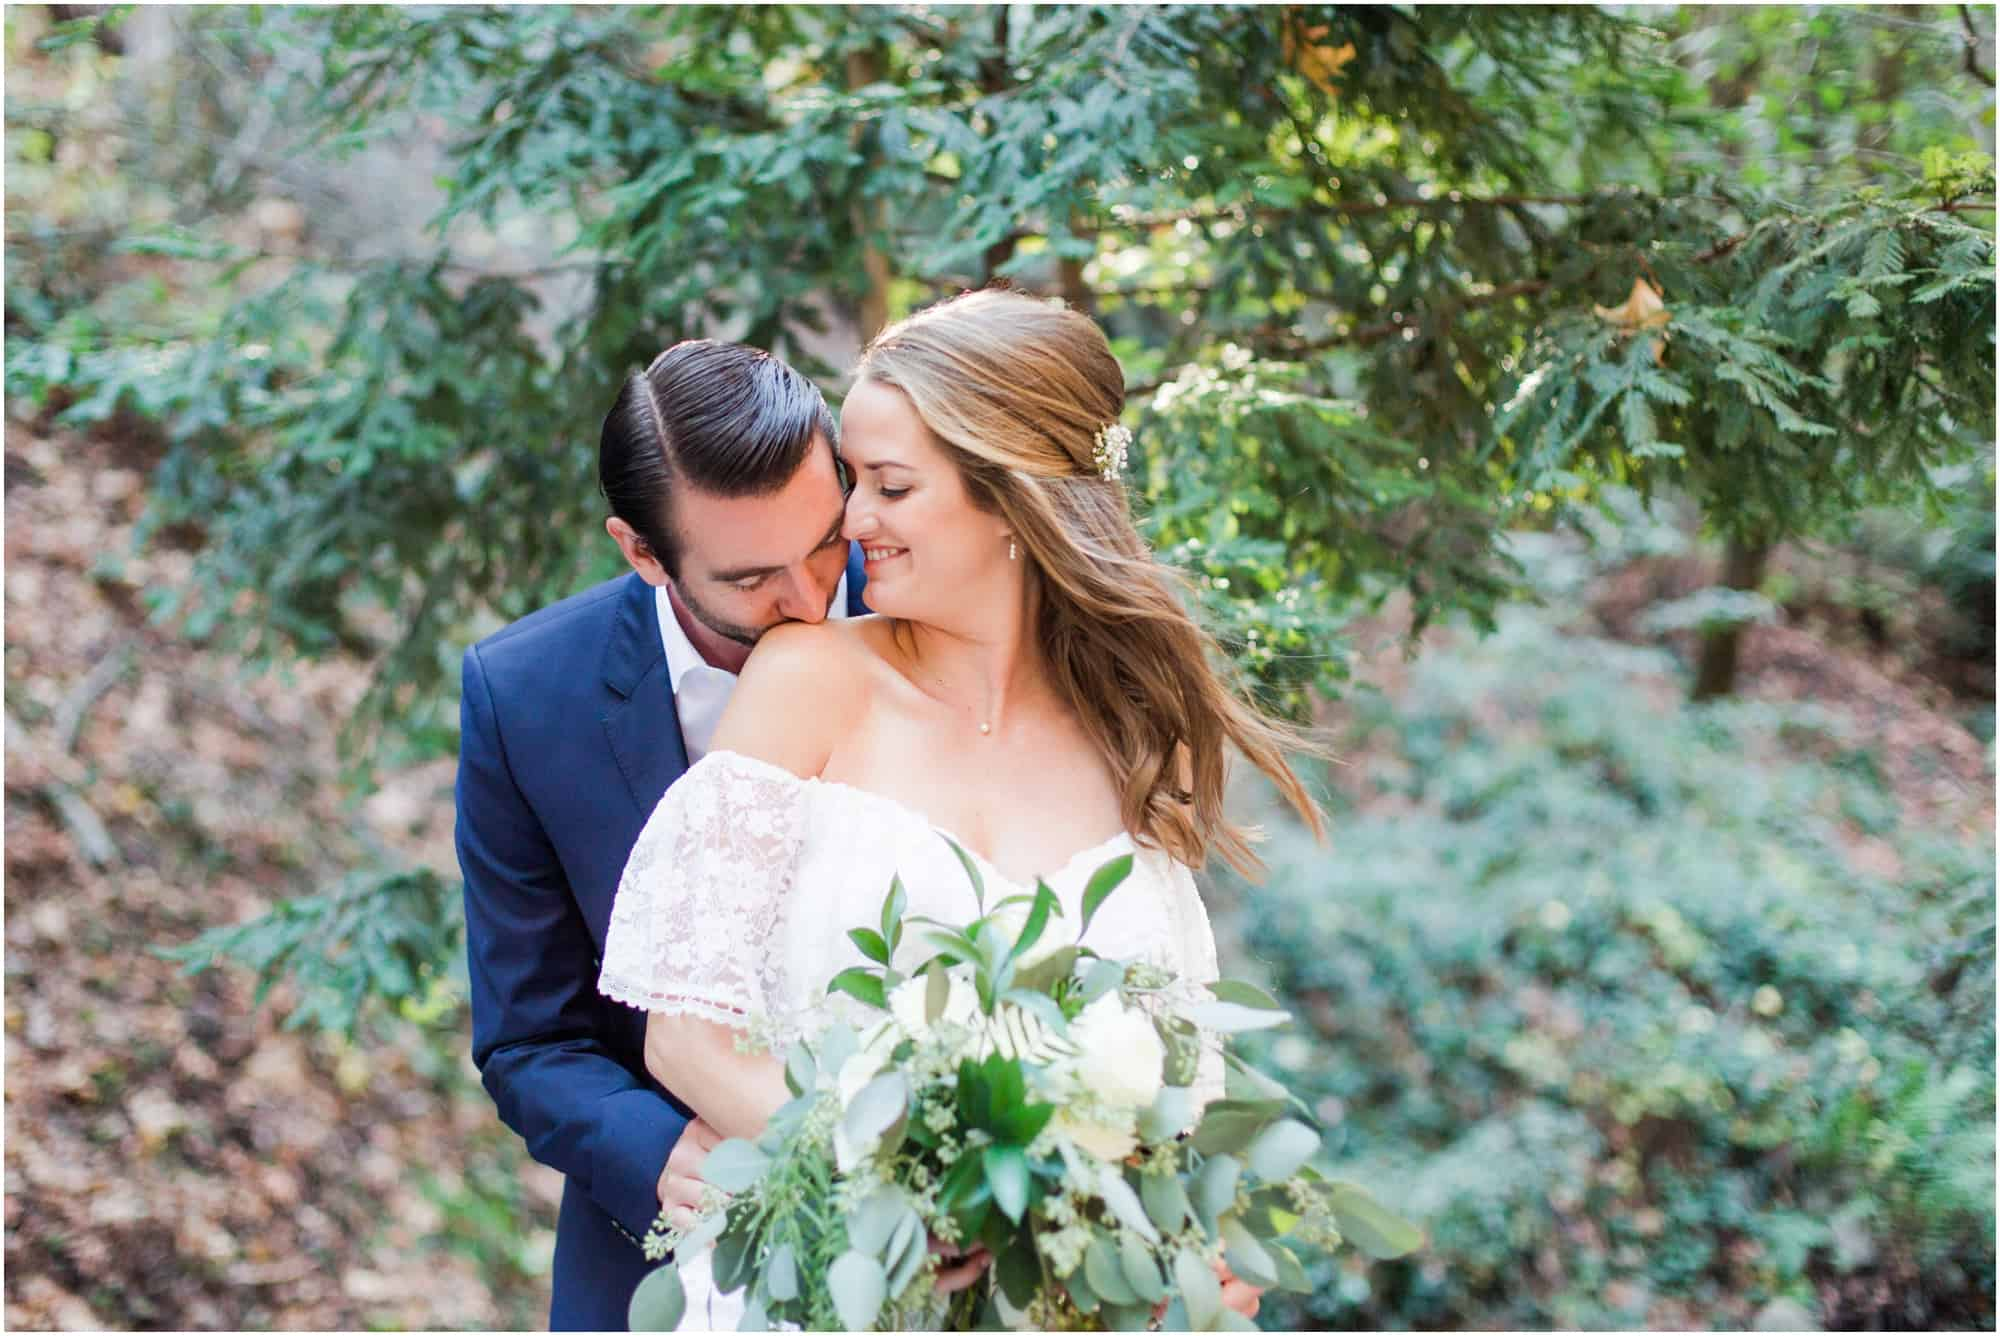 Saratoga Springs wedding pictures by Briana Calderon Photography